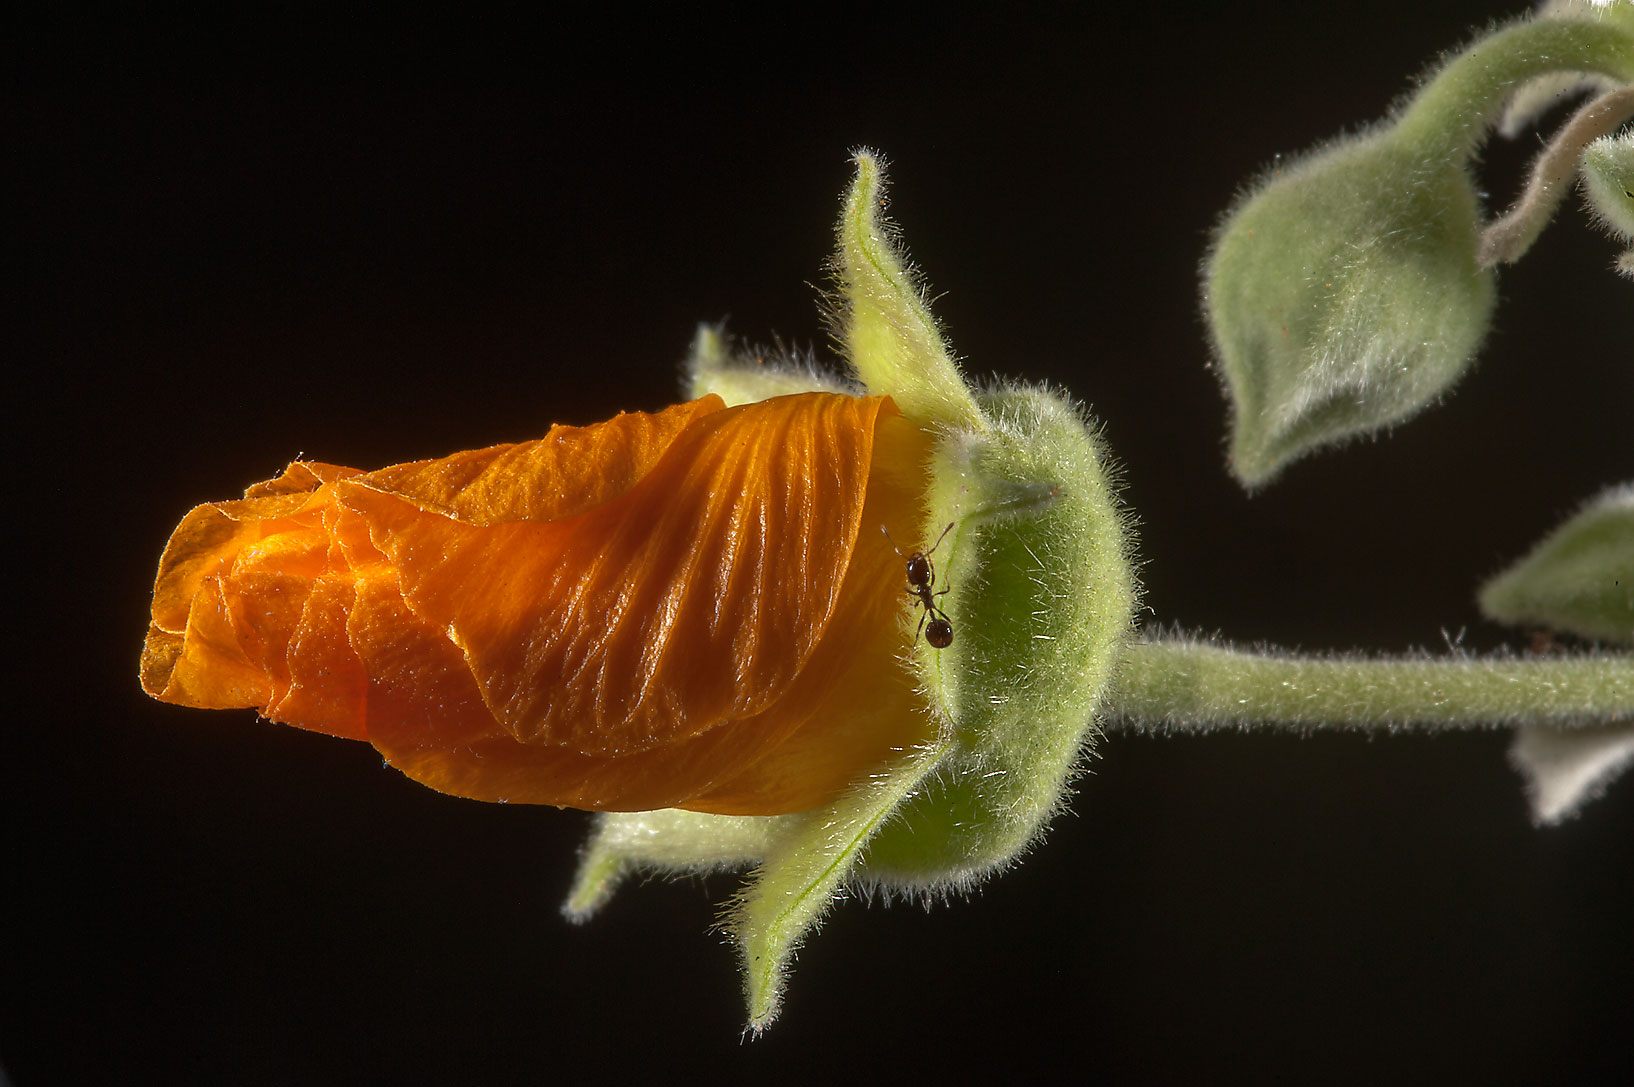 Flower bud of Abutilon figarianum with an ant in...Al Sham St. in West Bay. Doha, Qatar